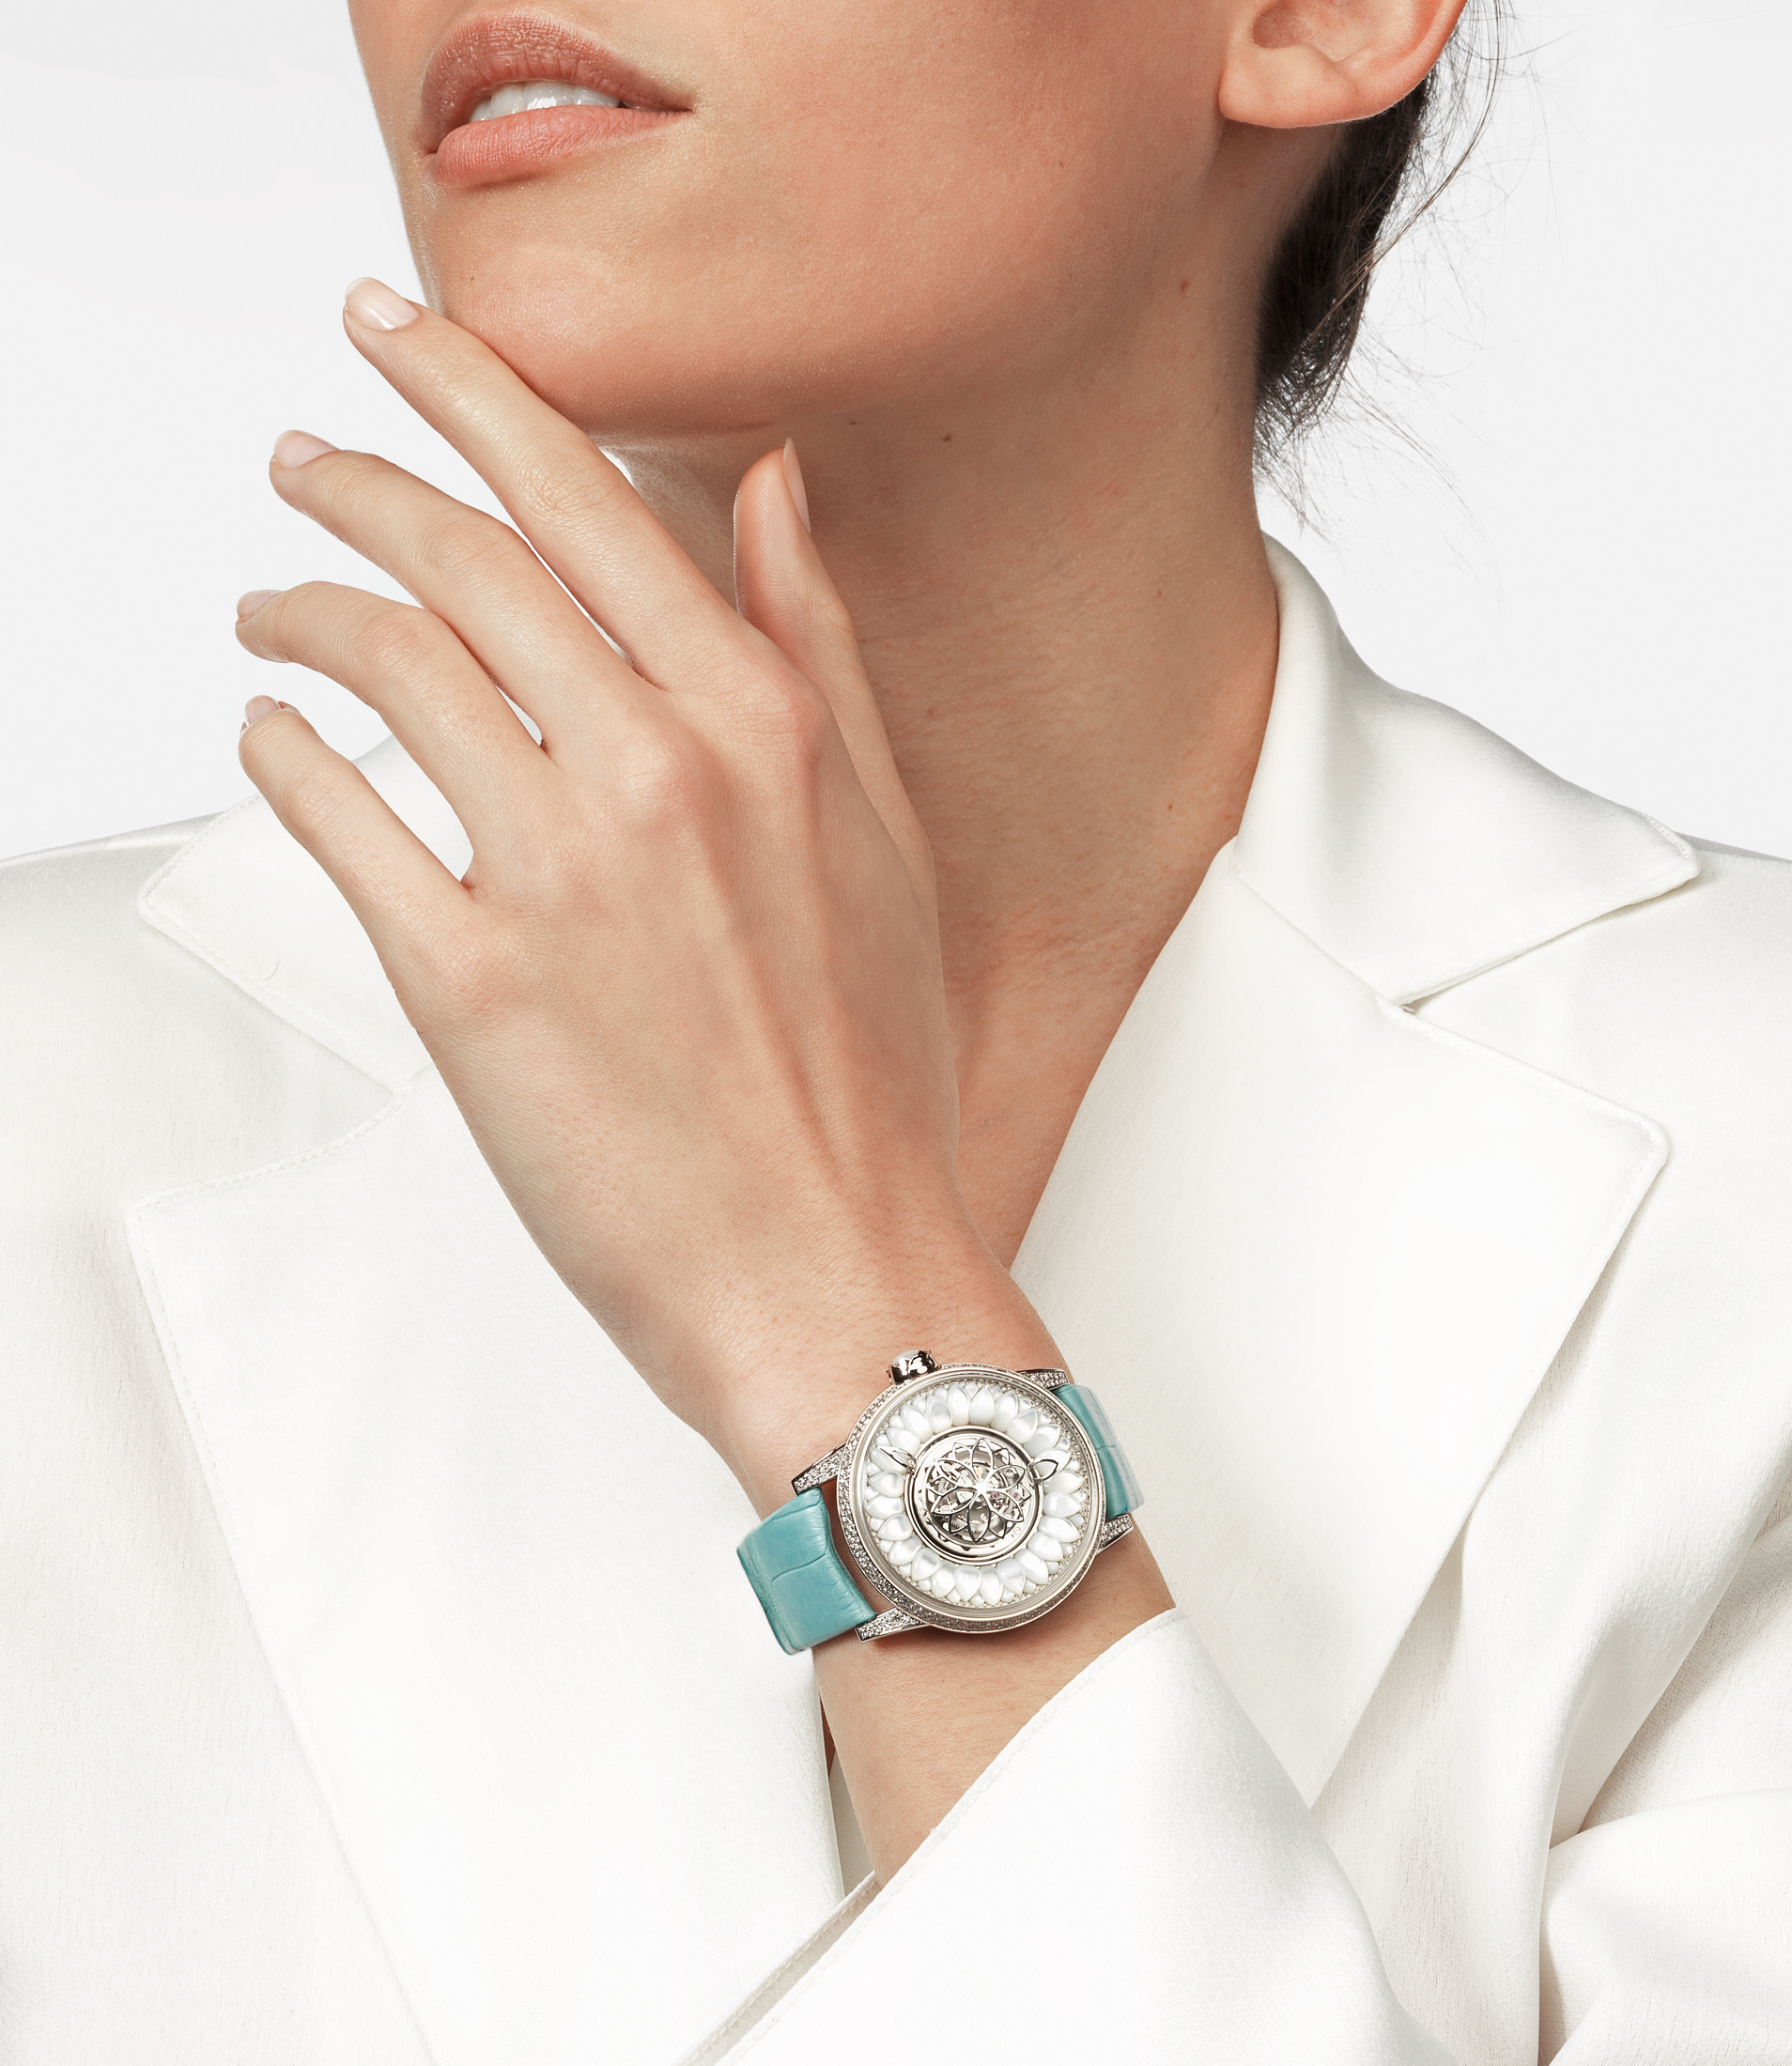 Beauregard Jewellery Watches Are Transcendent and Available Only in Limited Batches